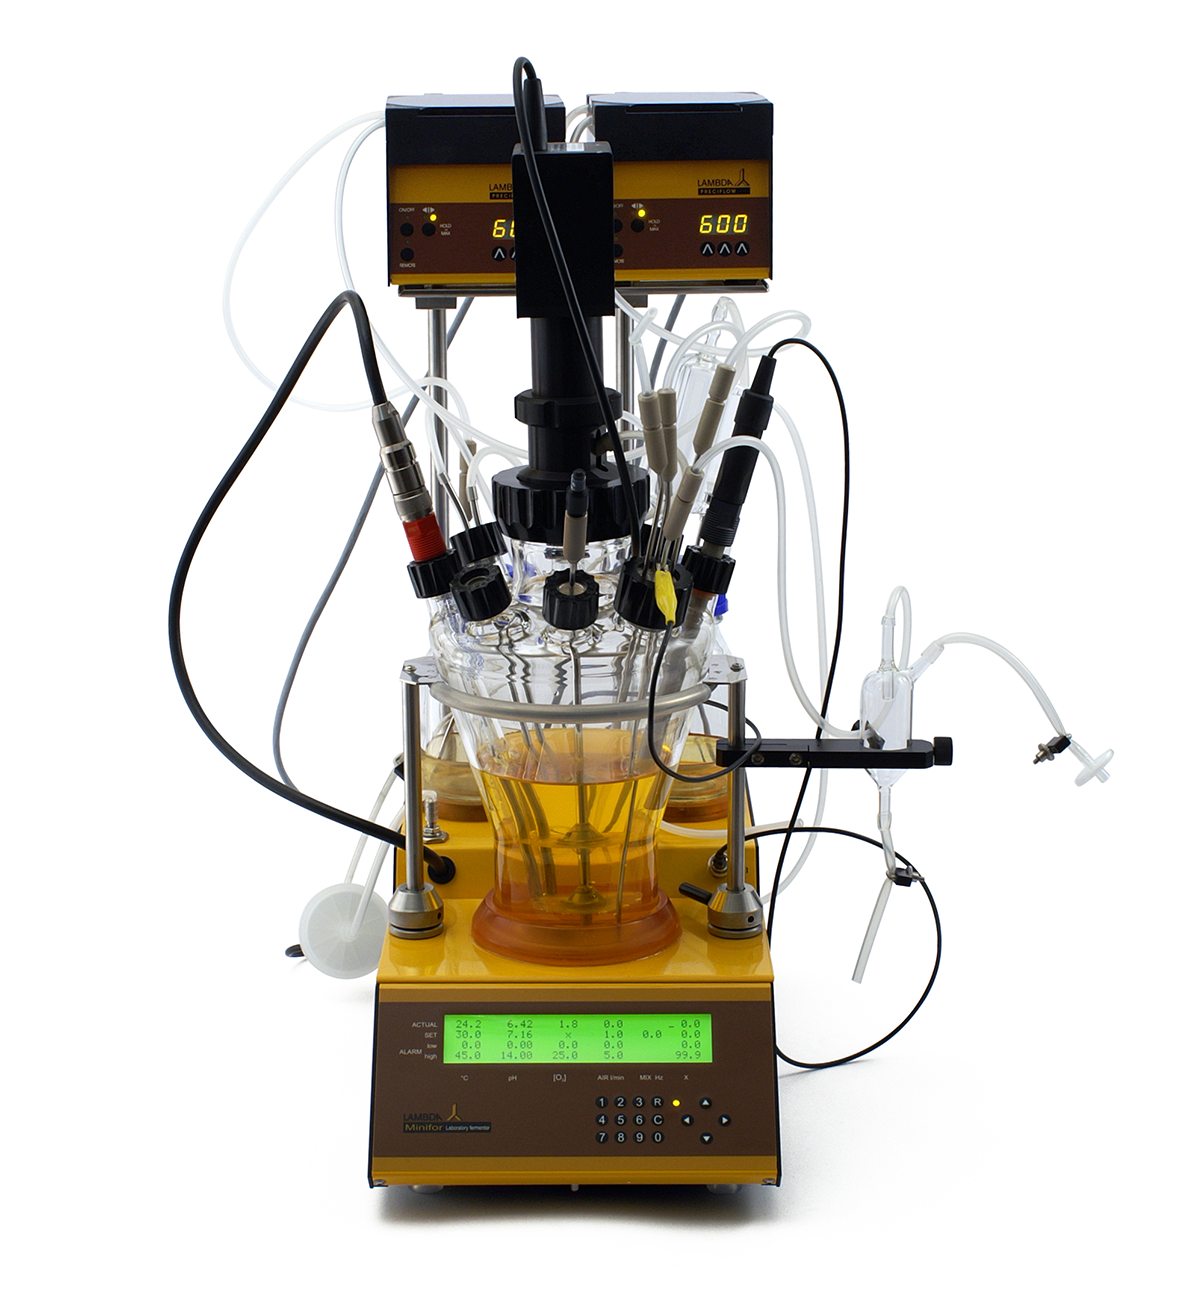 LAMBDA MINIFOR autoclavable bench-top fermentor-bioreactor advanced kit with1 L vessel volume